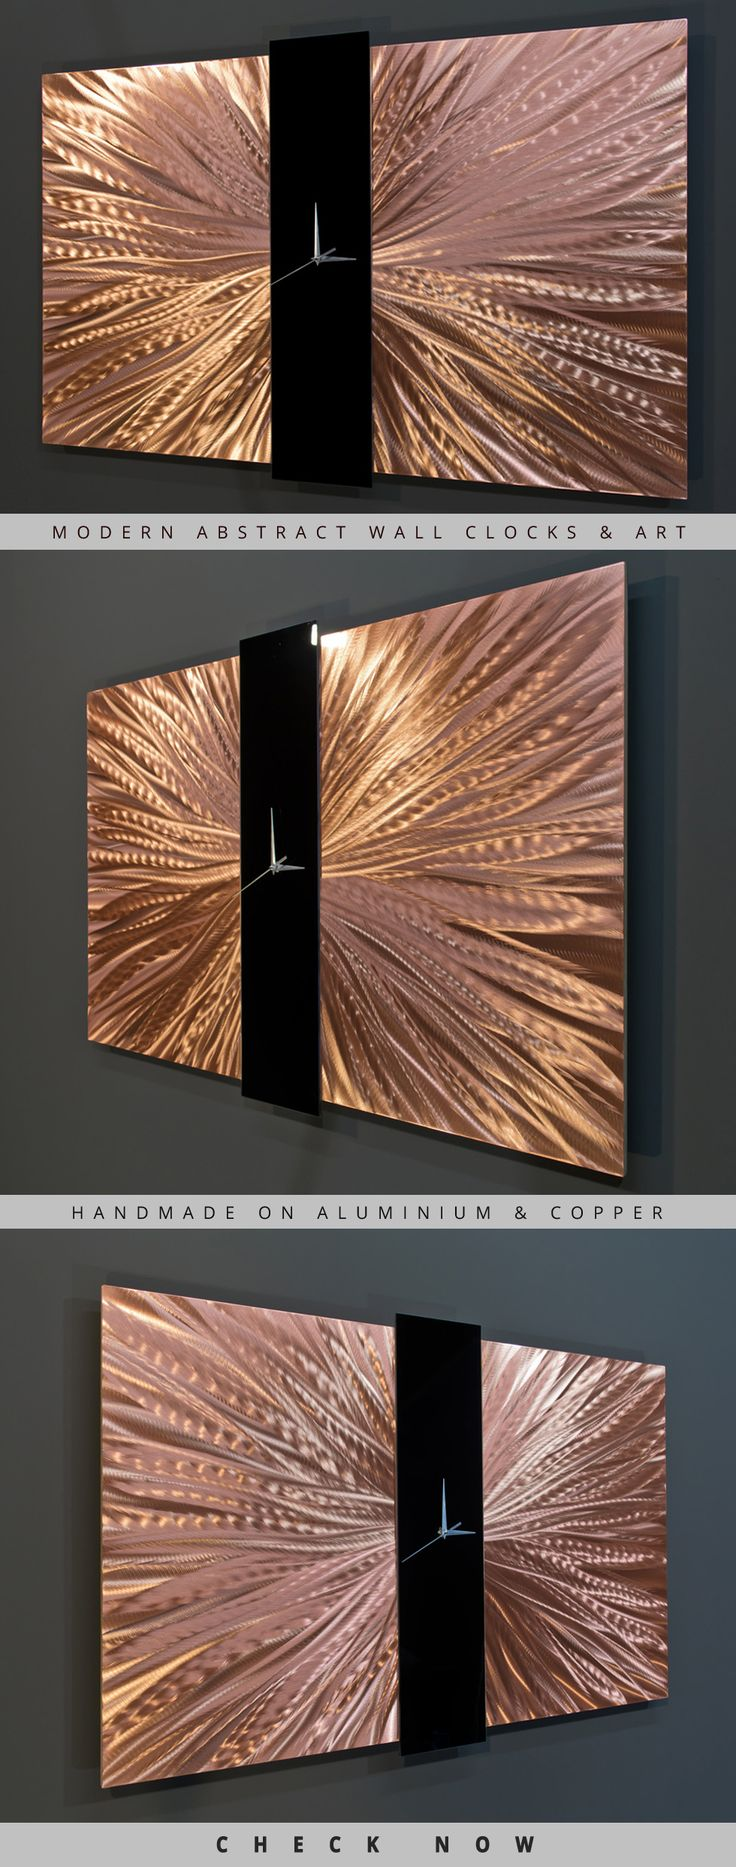 Beautiful contemporary modern metal wall clock & art piece made by hand on copper